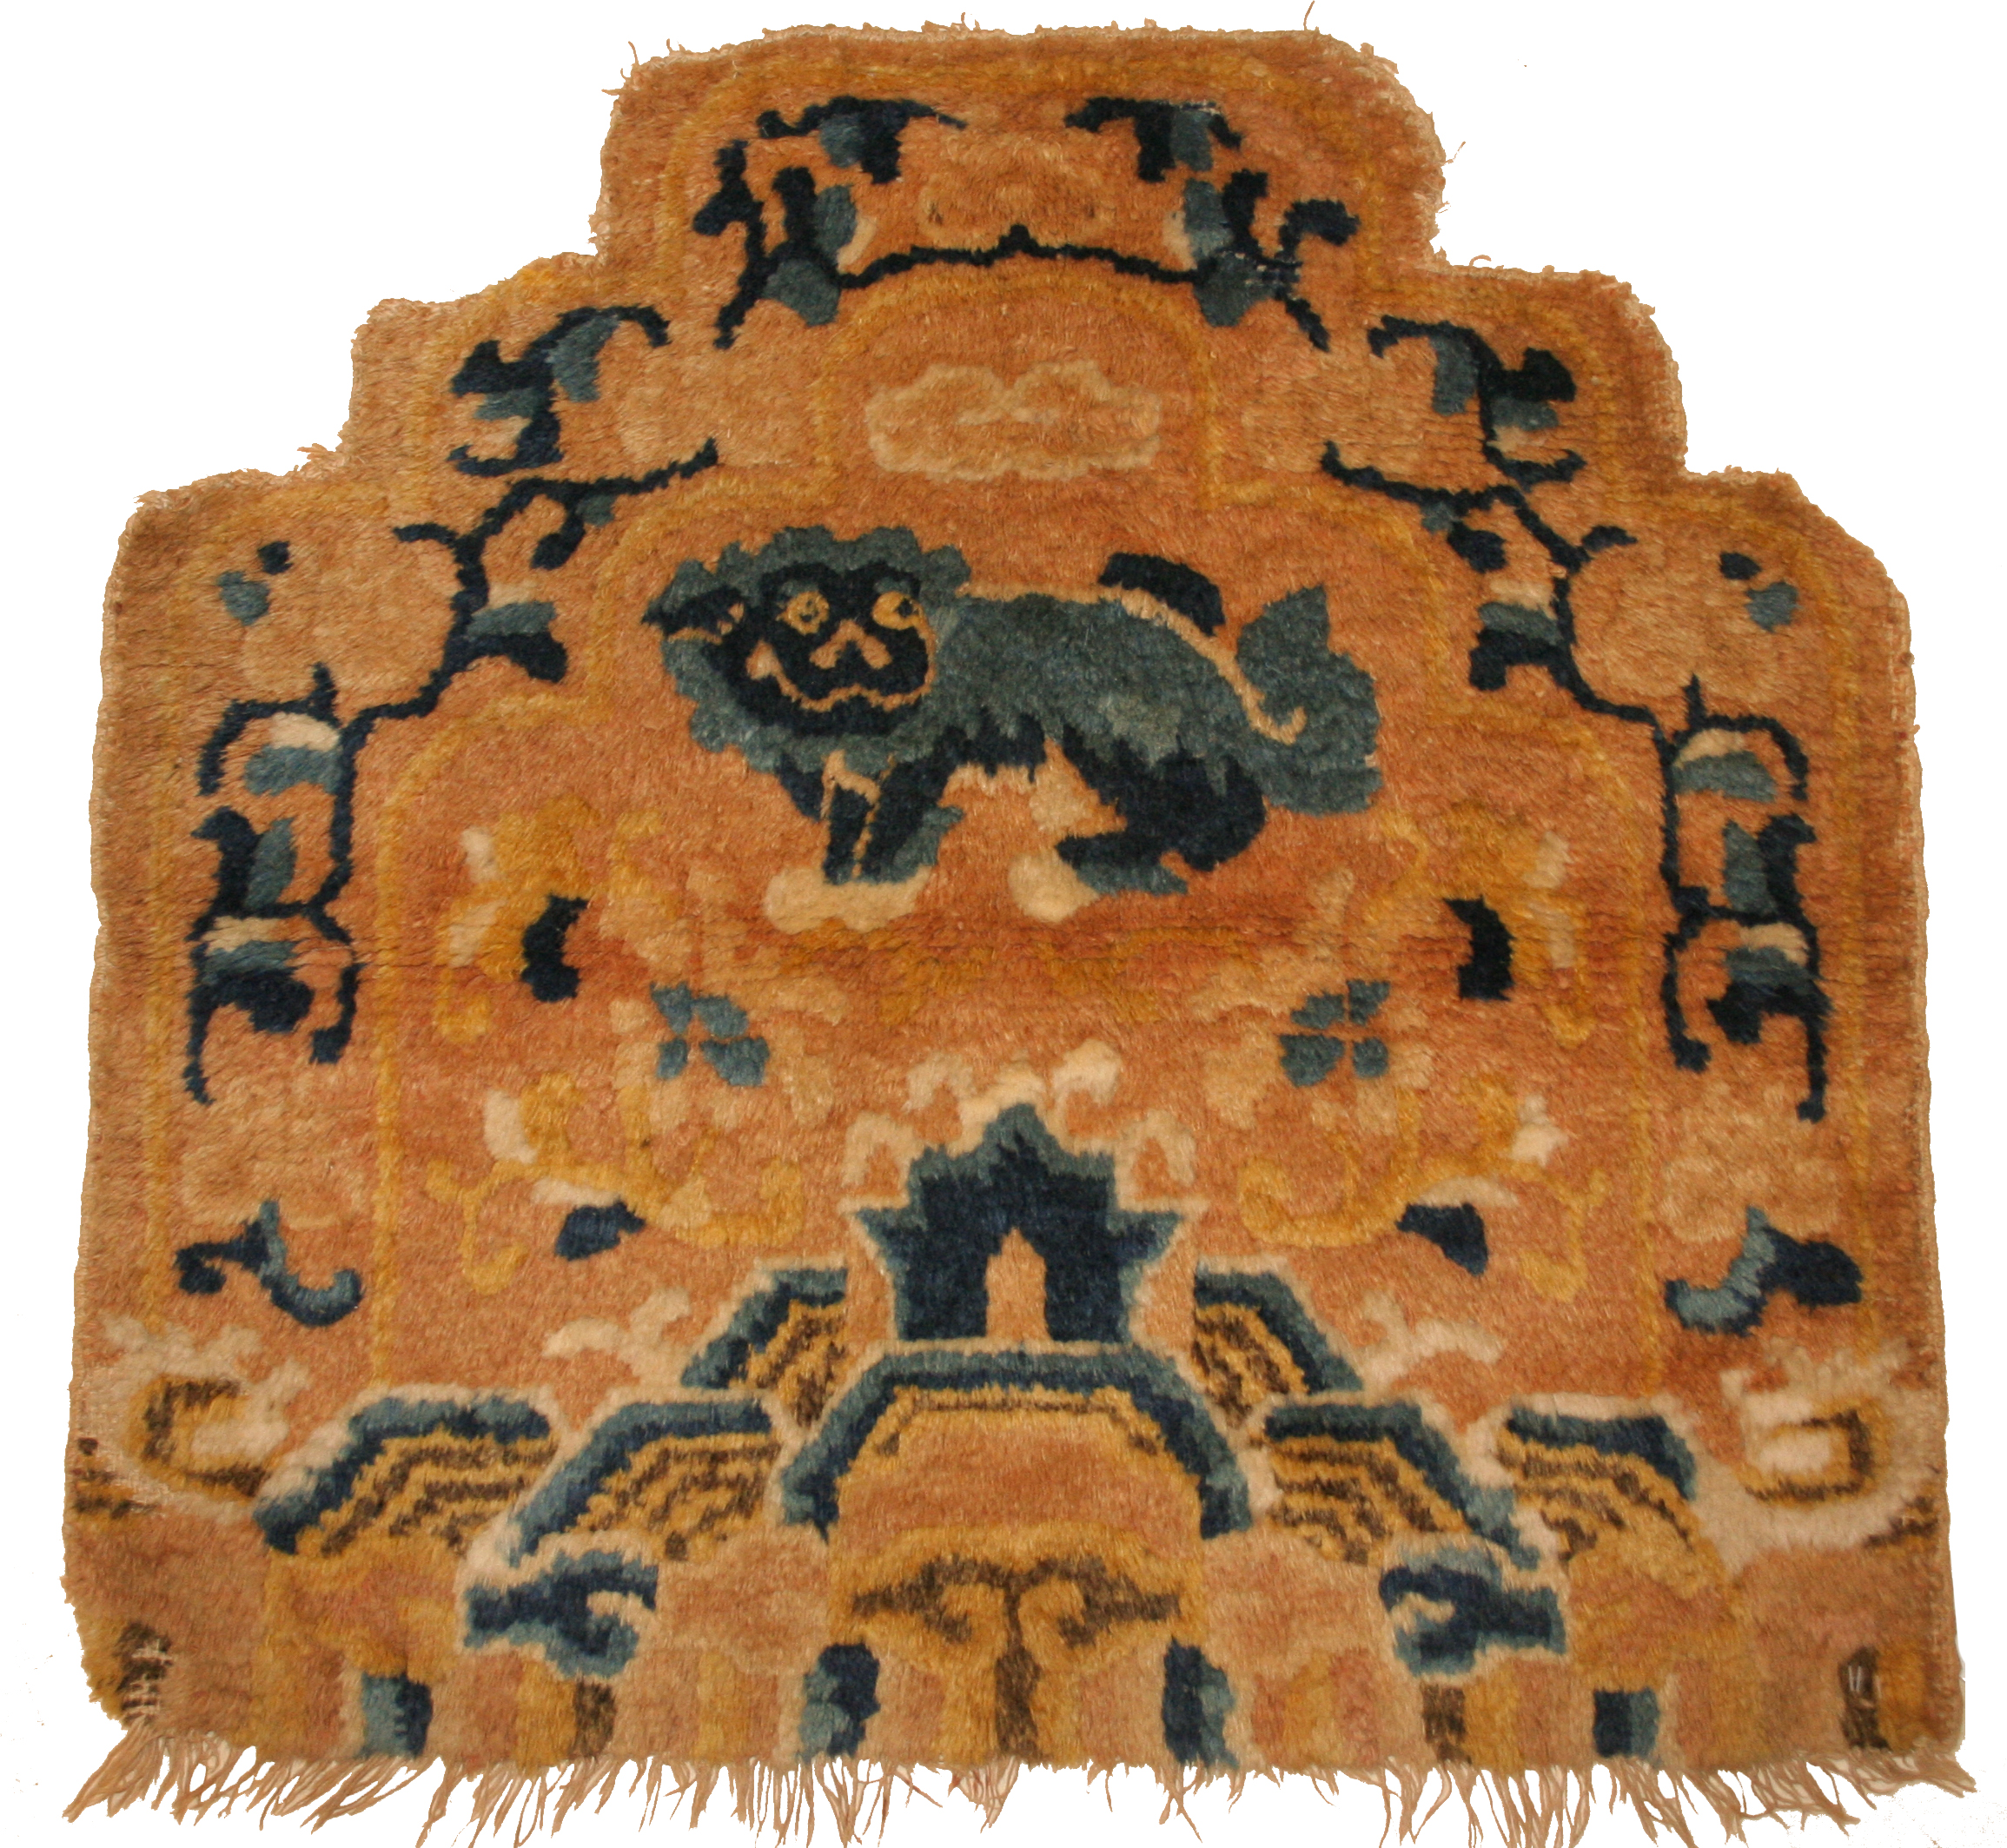 Throne back cover with lion dog